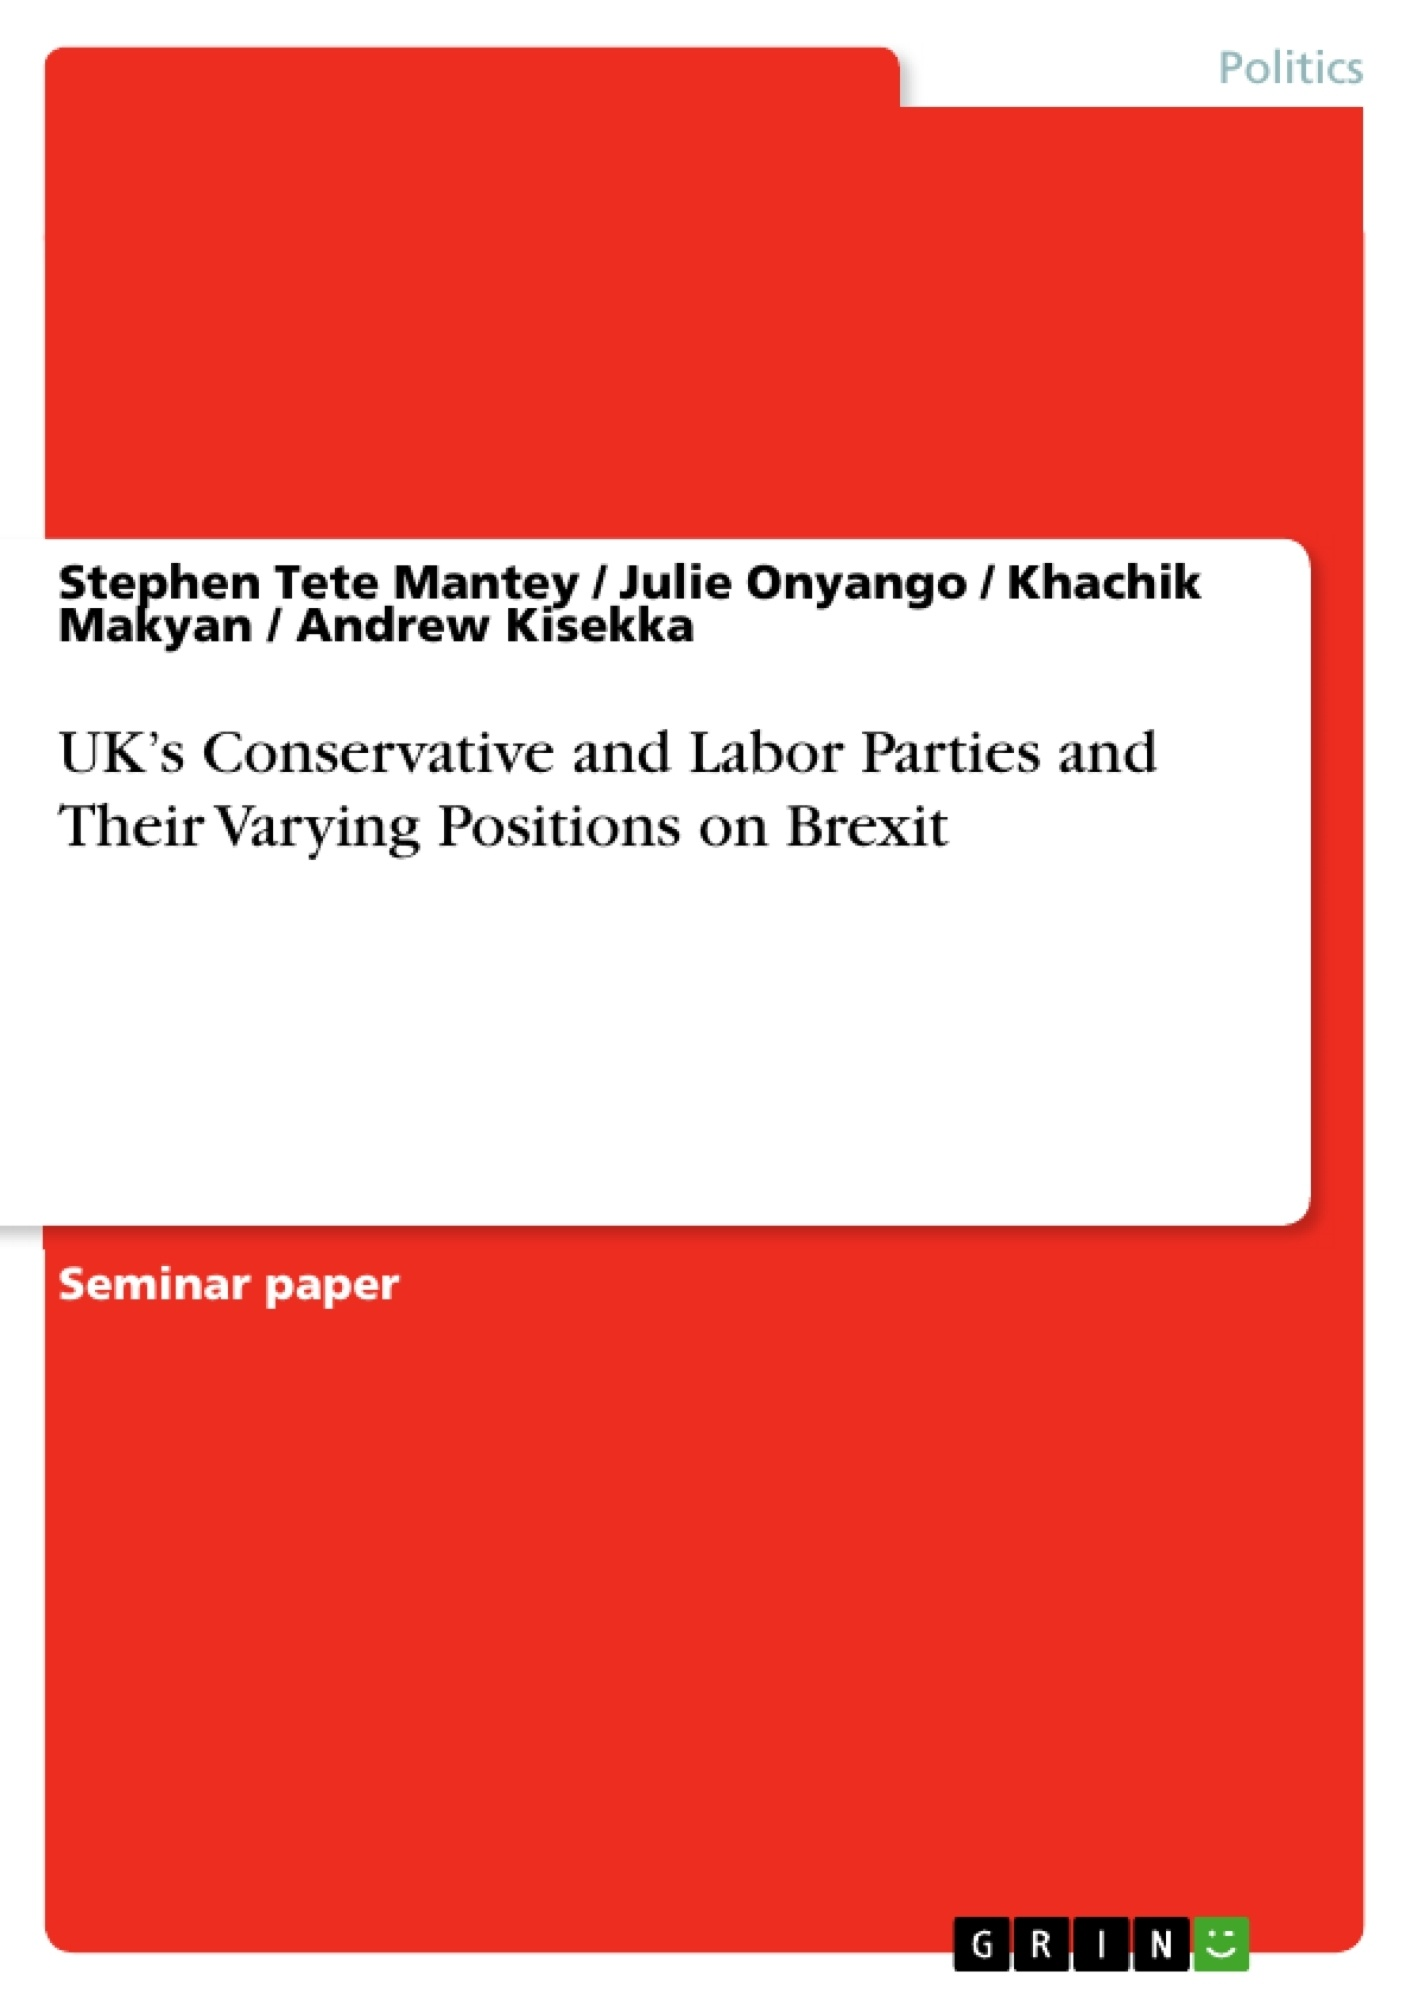 Title: UK's Conservative and Labor Parties and Their Varying Positions on Brexit